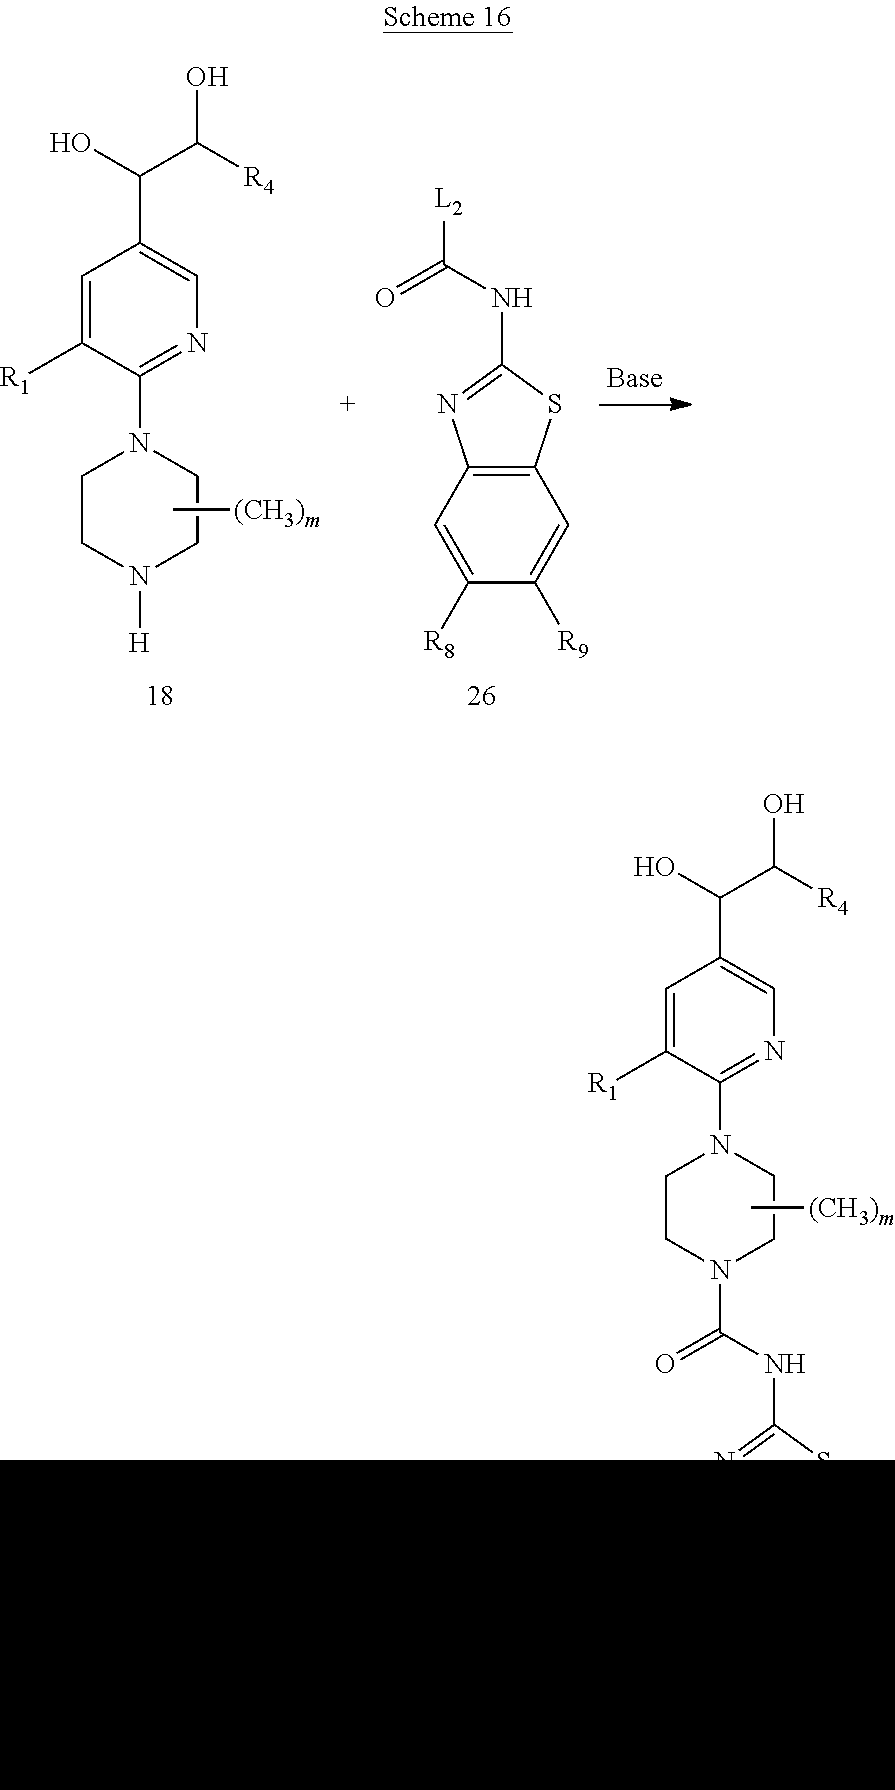 Us20140329829a1 trpv1 antagonists including dihydroxy substituent and uses thereof patents